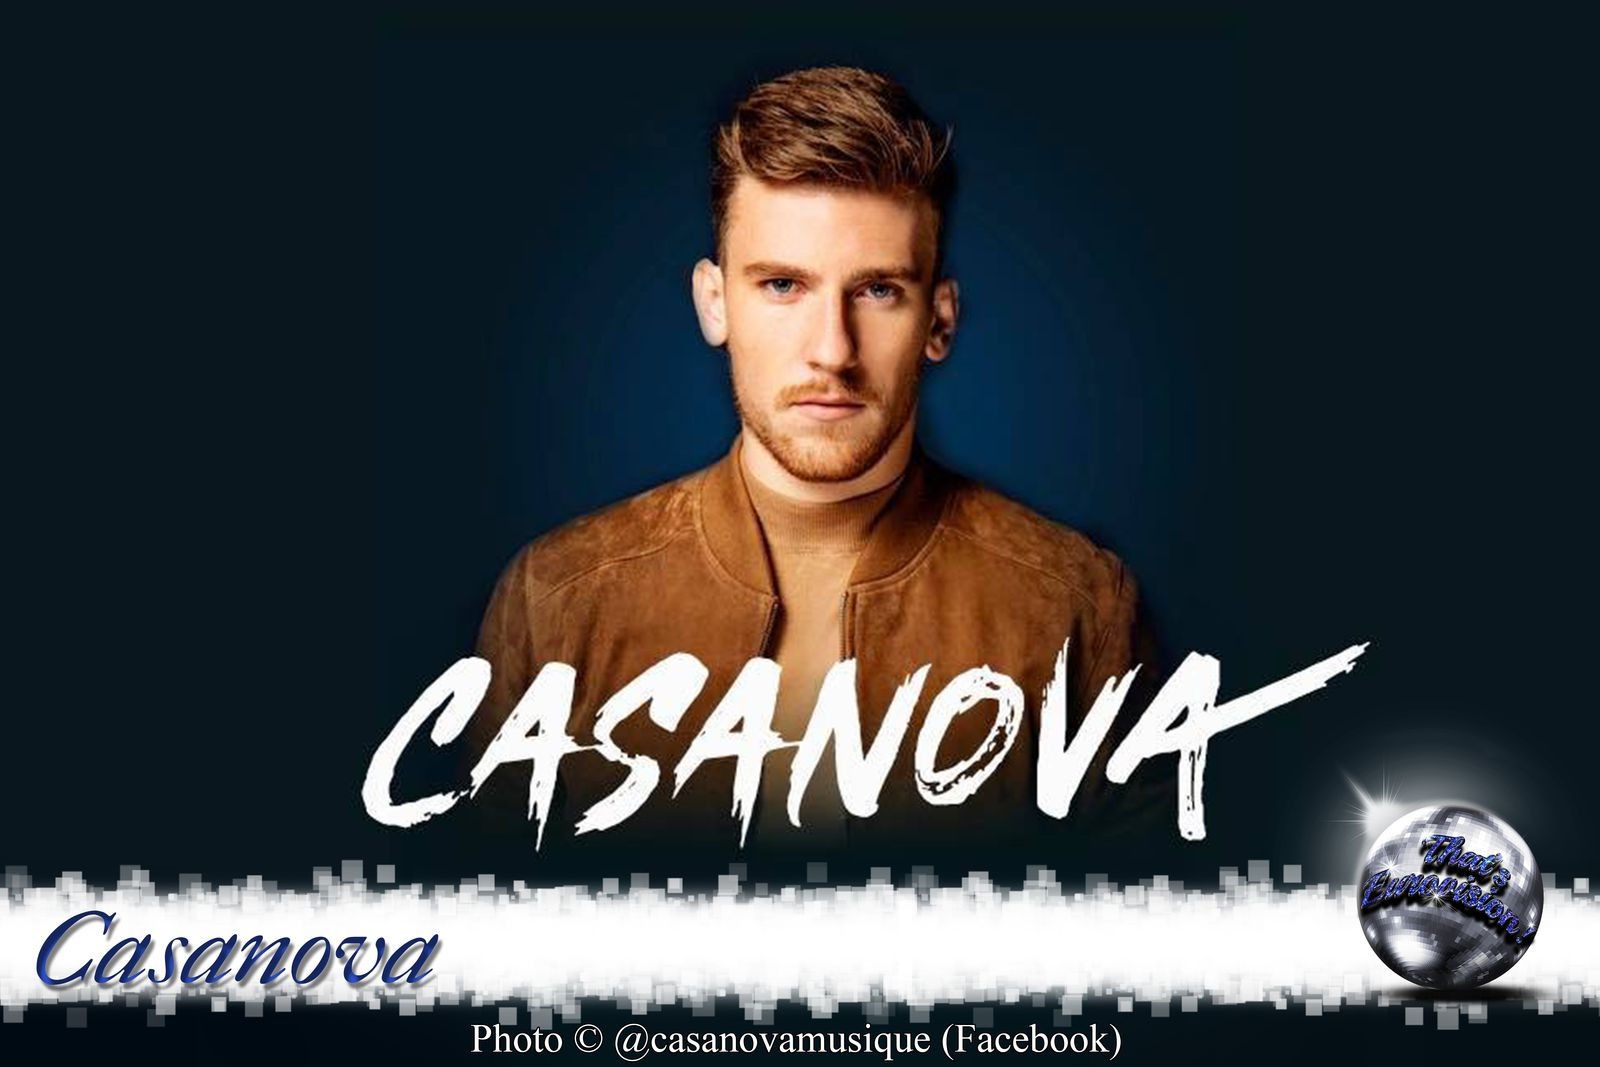 Casanova - Together, we are stronger!